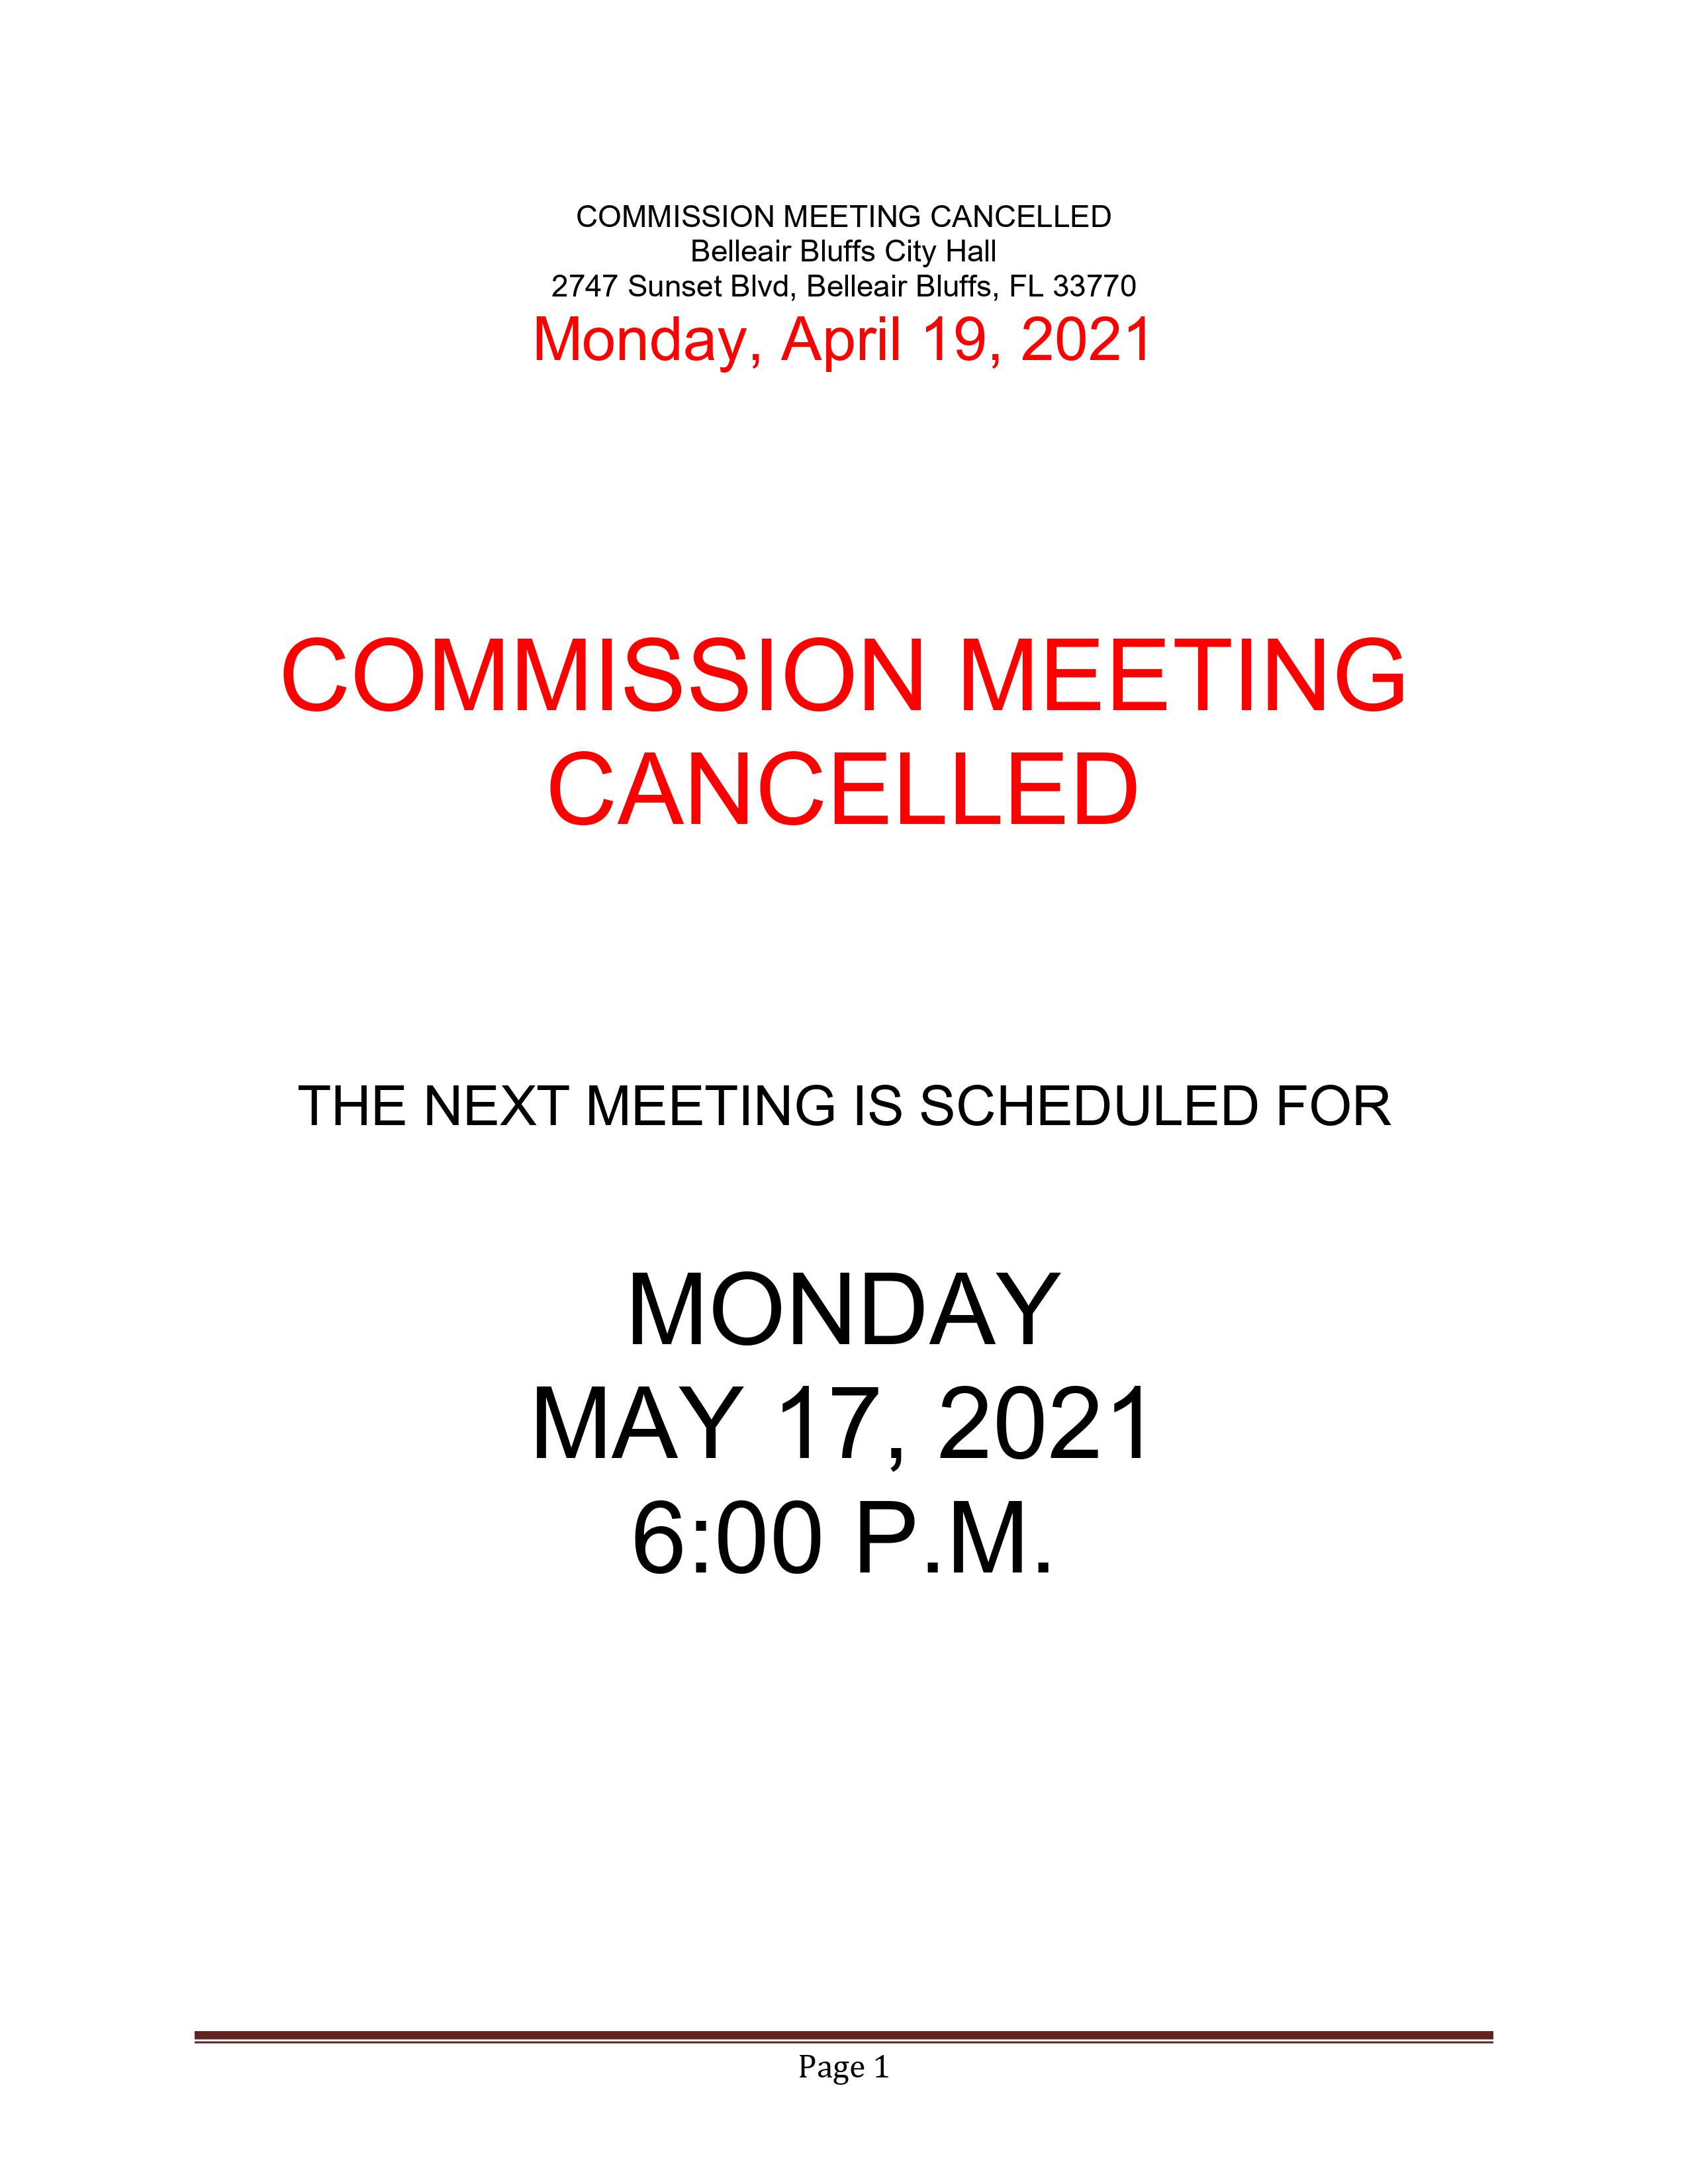 April 19, 2021 Meeting Cancellation Notice